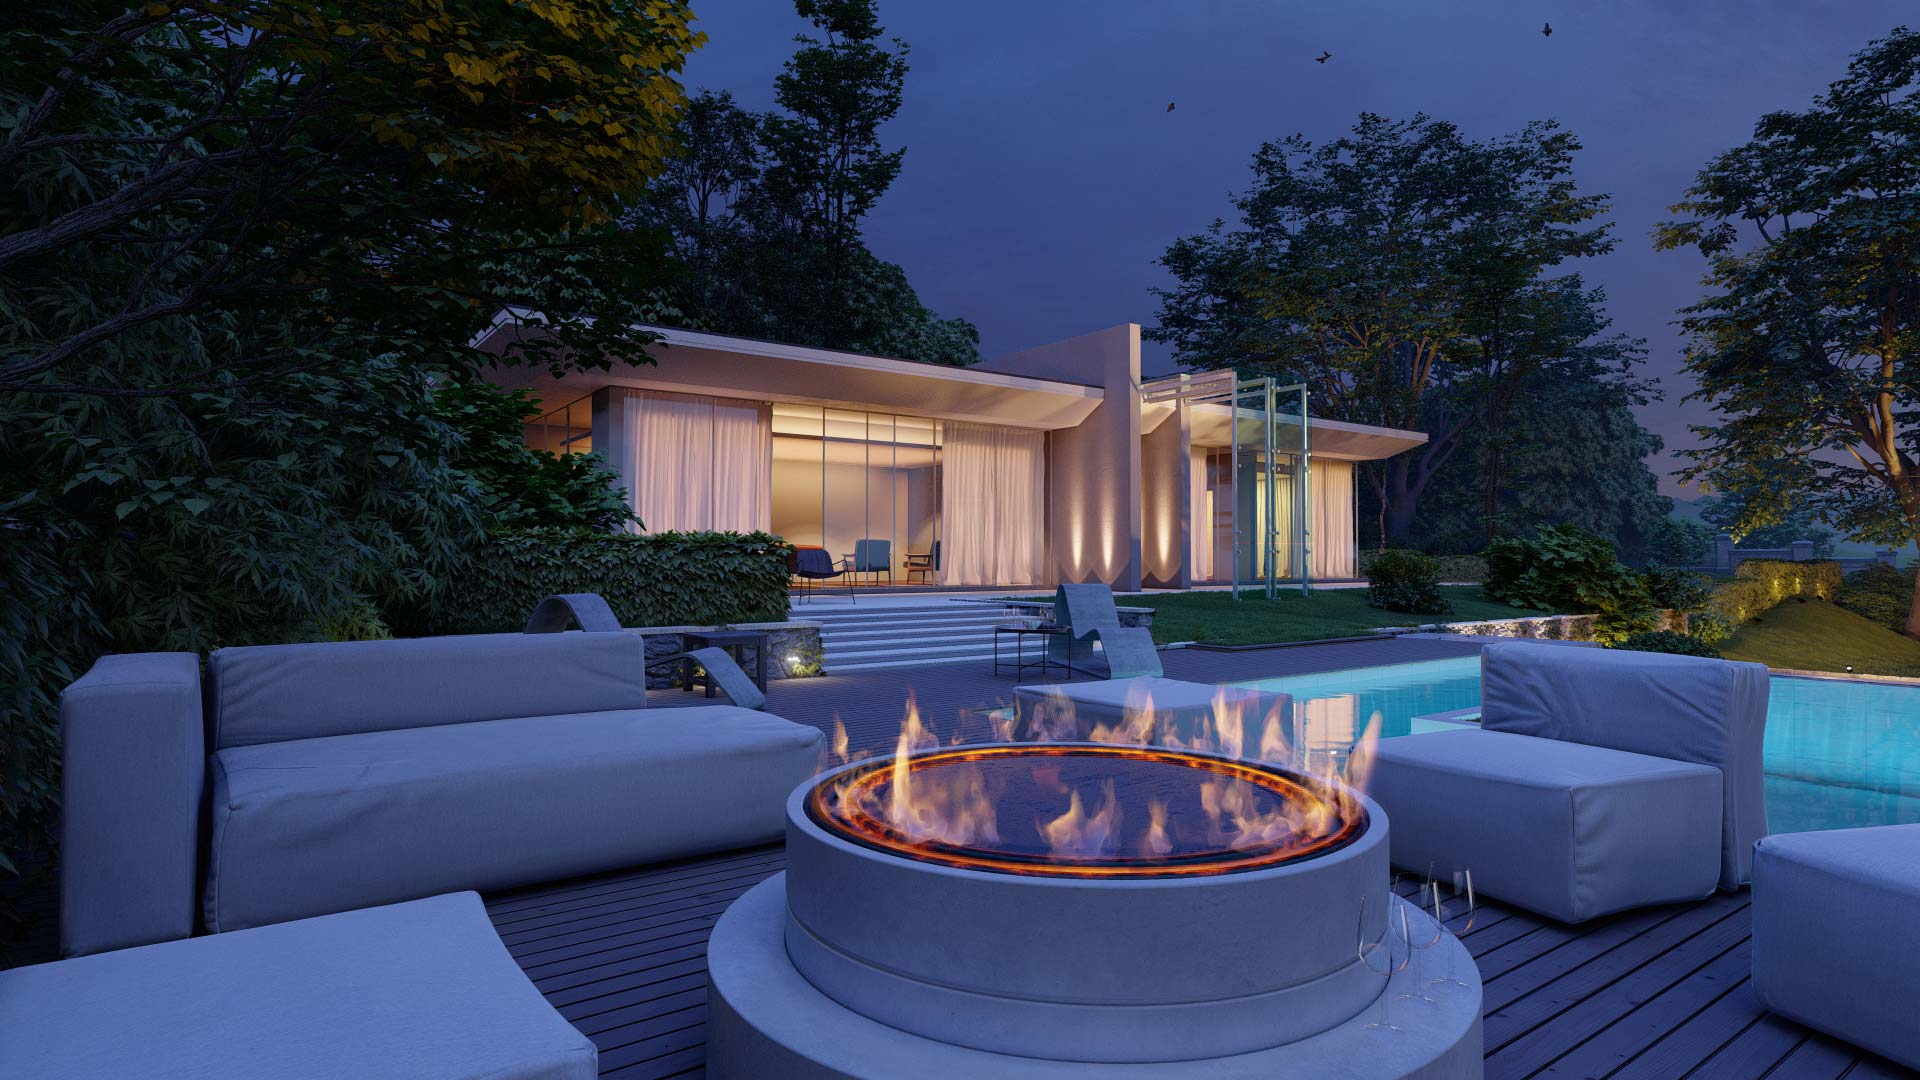 Residential house with outdoor fire pit